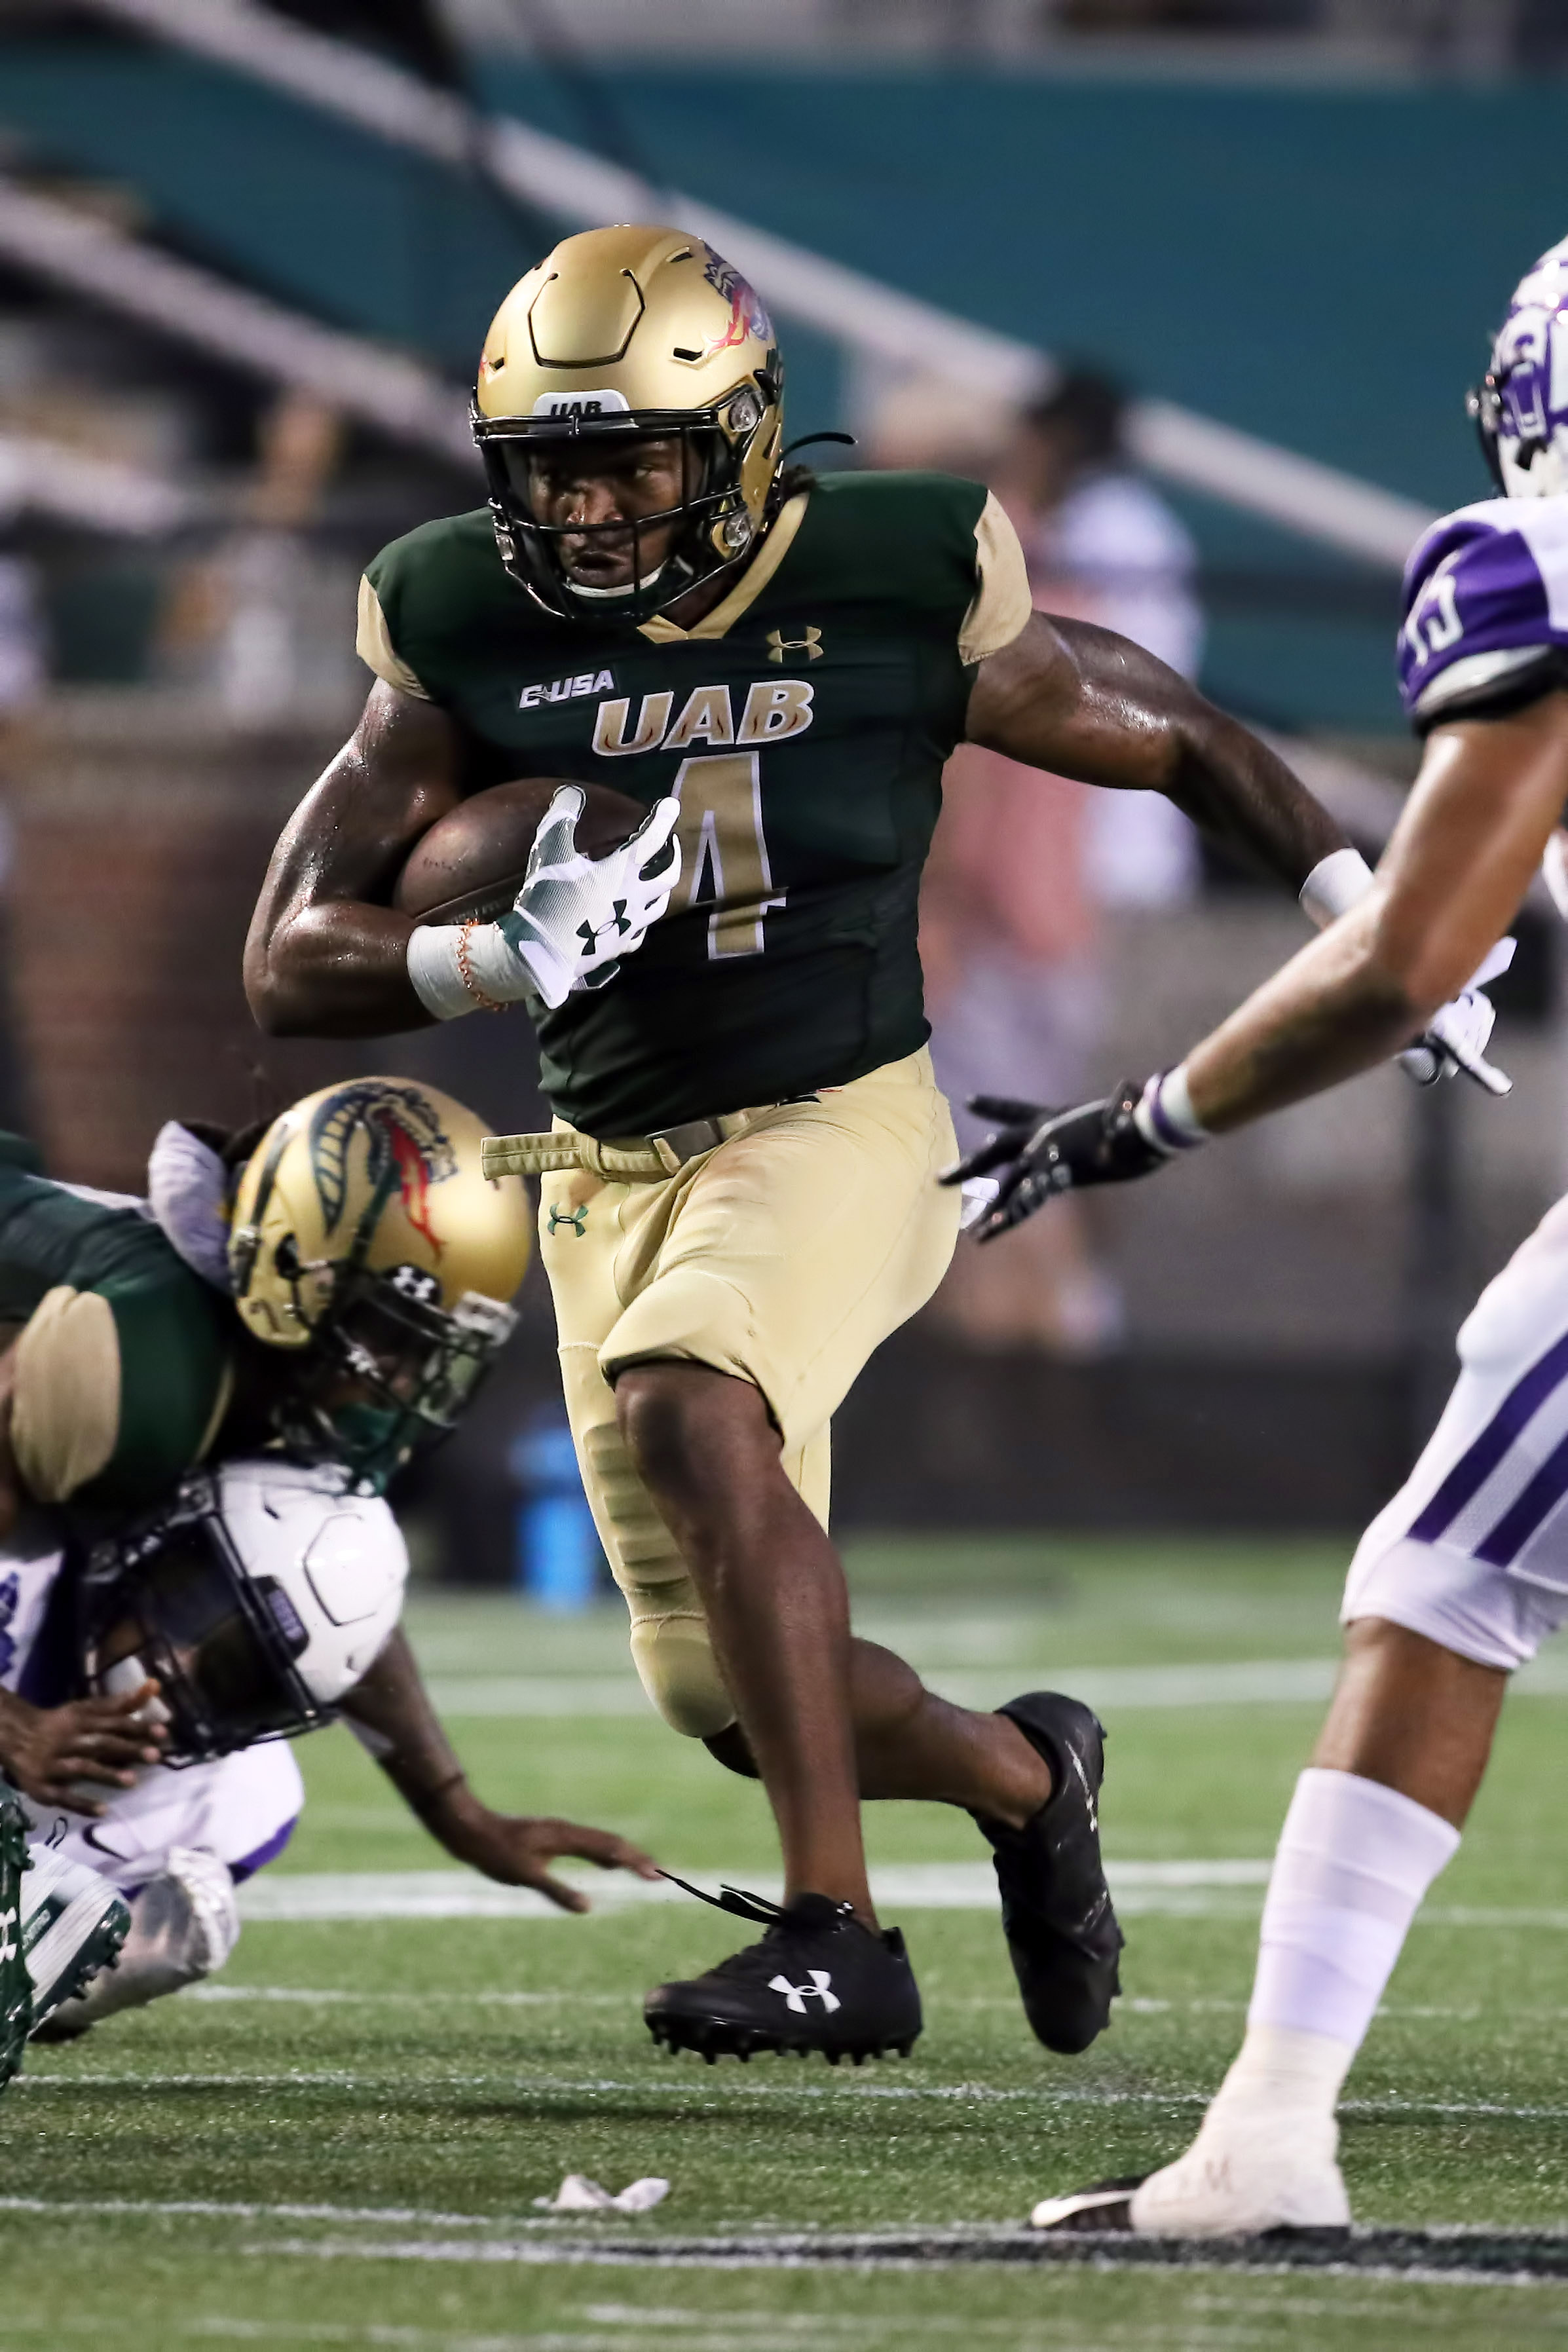 UAB Blazers running back Spencer Brown (4) carries the ball during the college football game between the Central Arkansas Bears and the UAB Blazers on September 3, 2020, at Legion Field in Birmingham, AL.